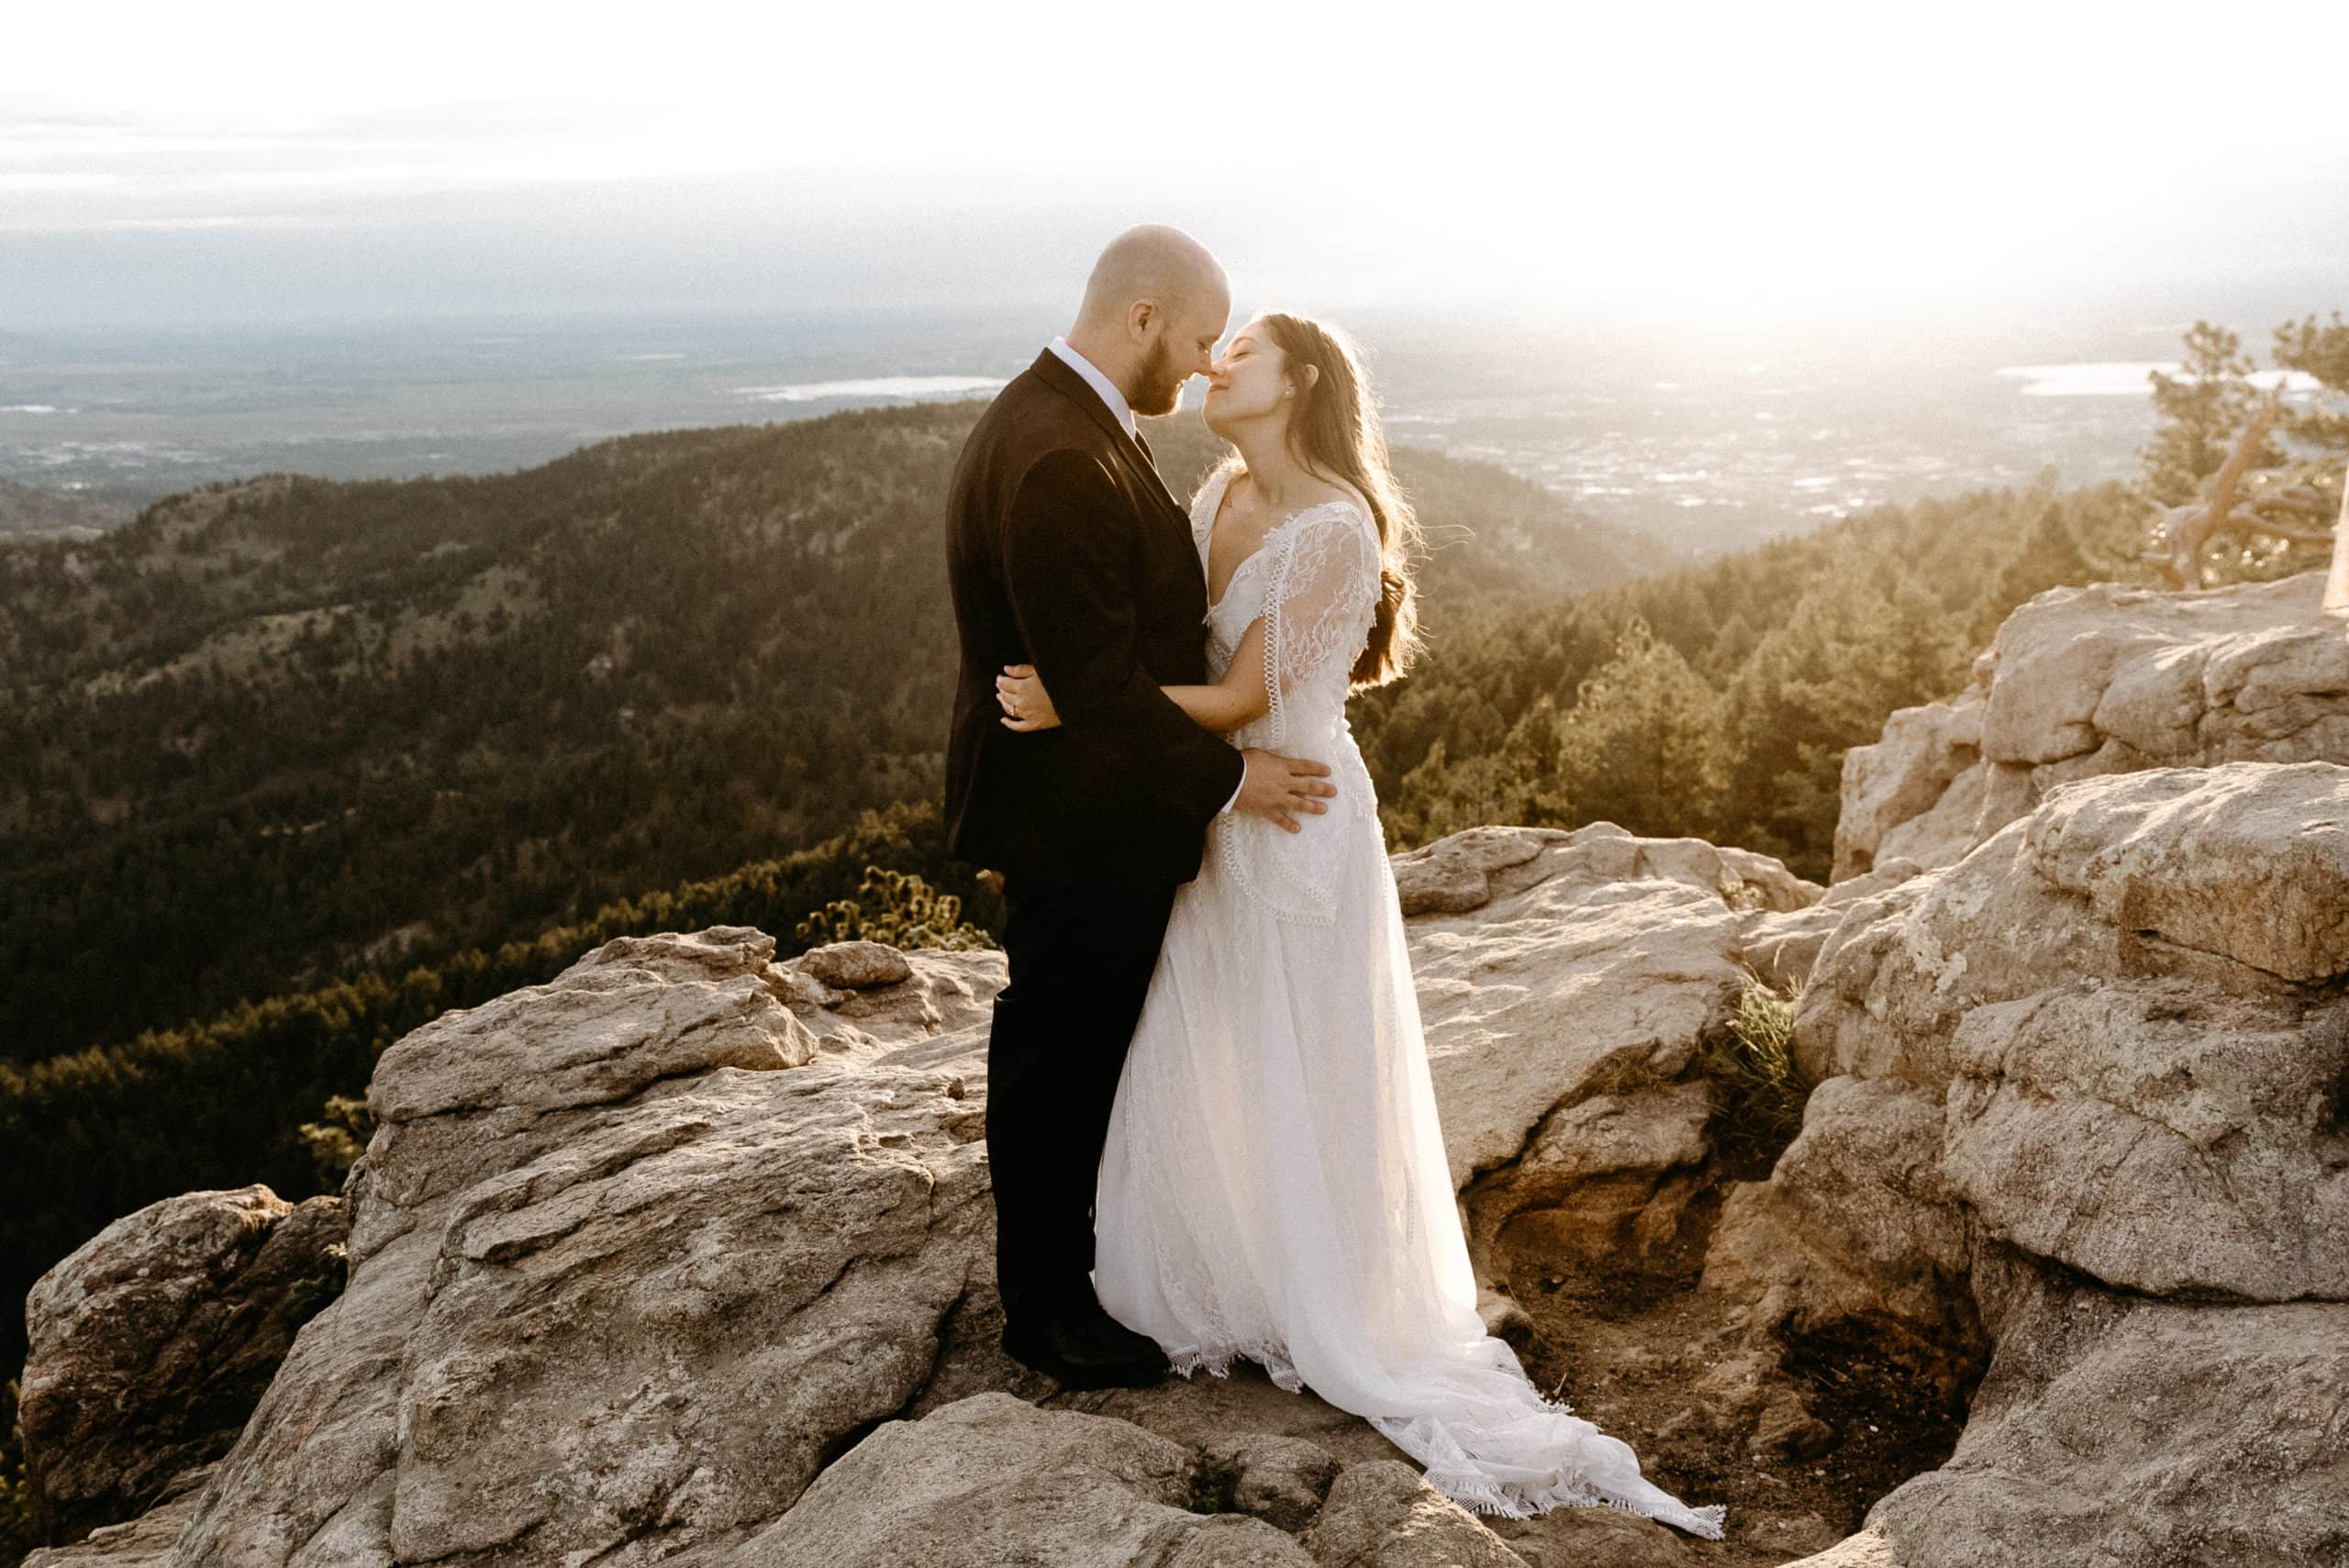 Top 25 Places to Elope in Colorado